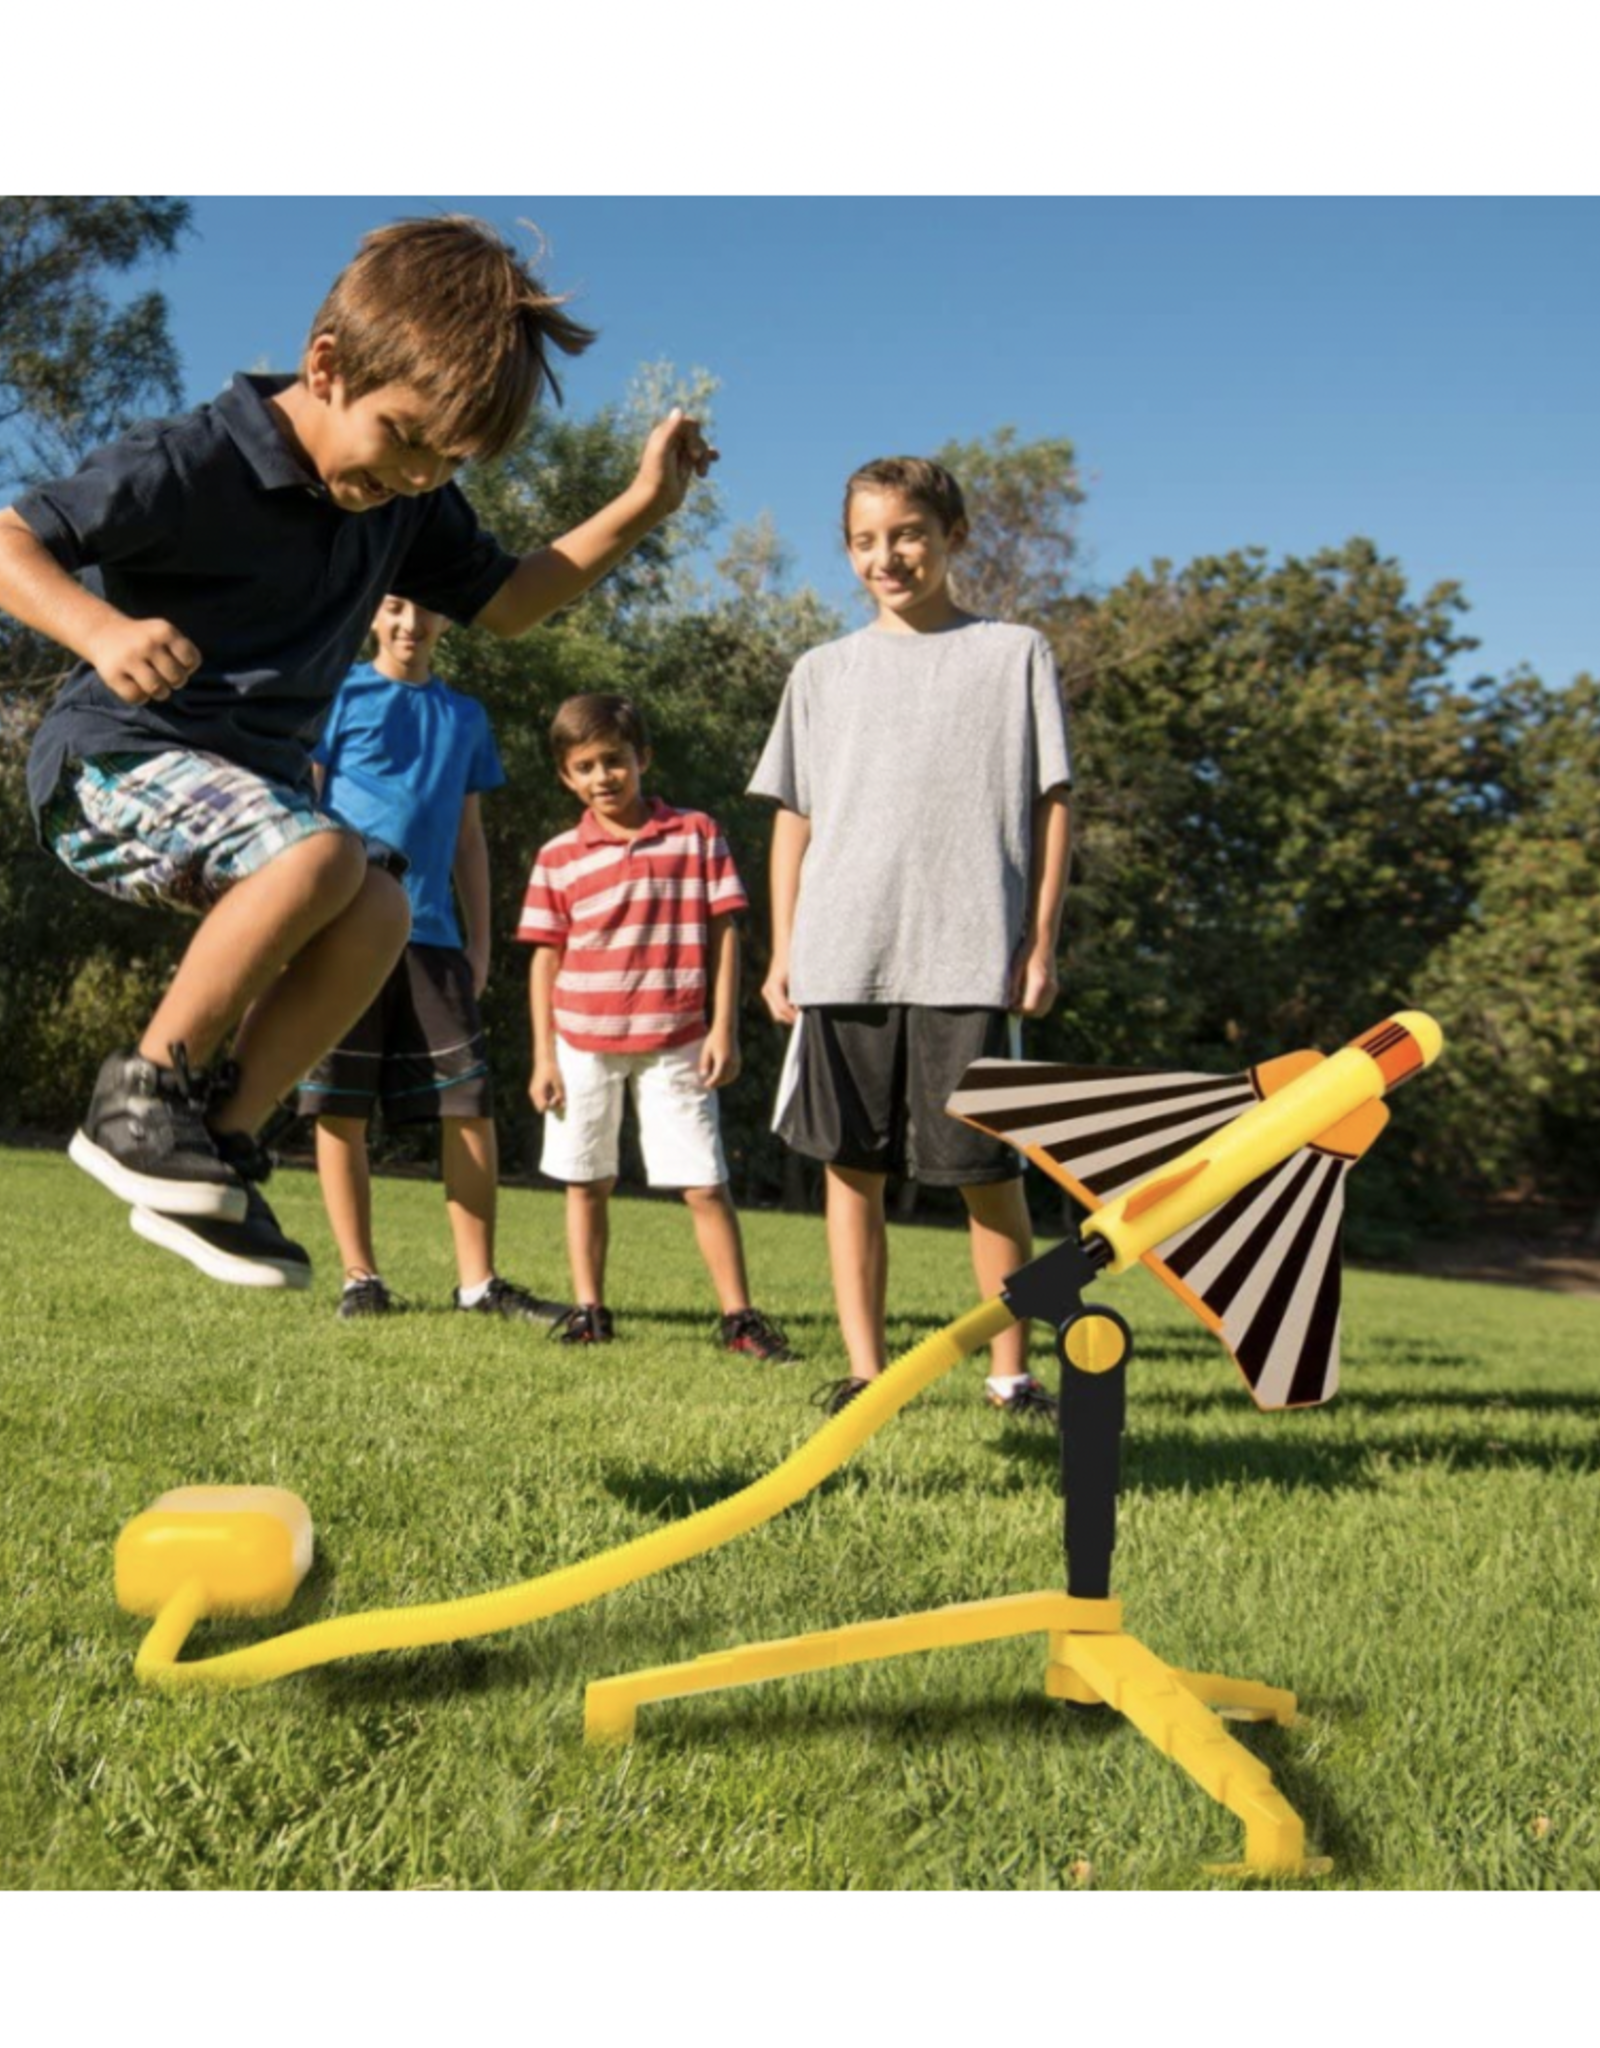 Stomp Rocket Stunt Planes Stomp Rocket